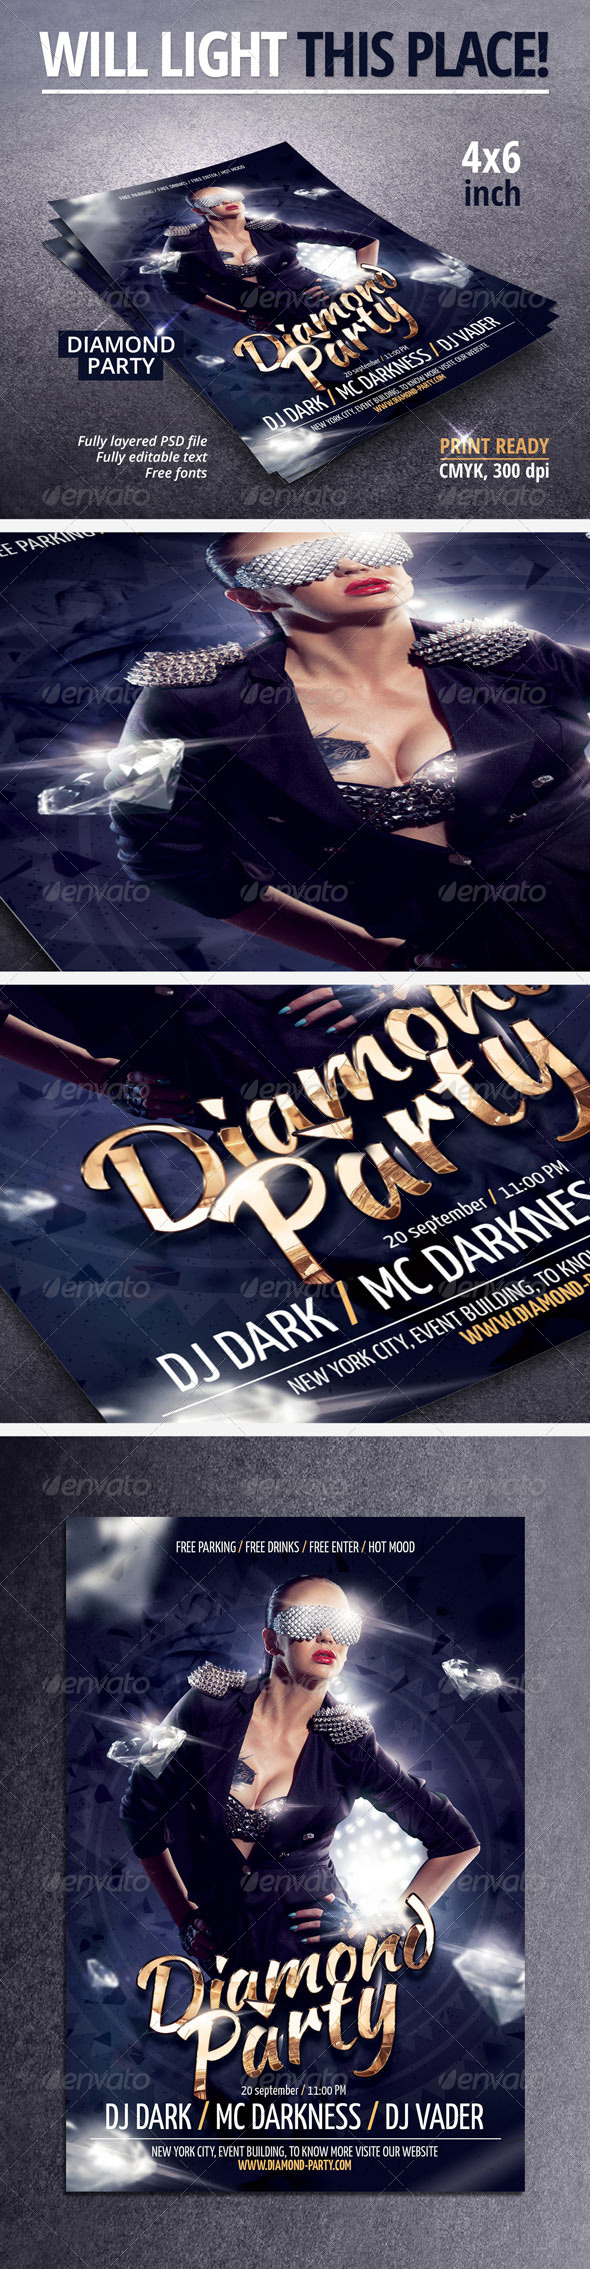 Diamond Party Flyer - Clubs & Parties Events